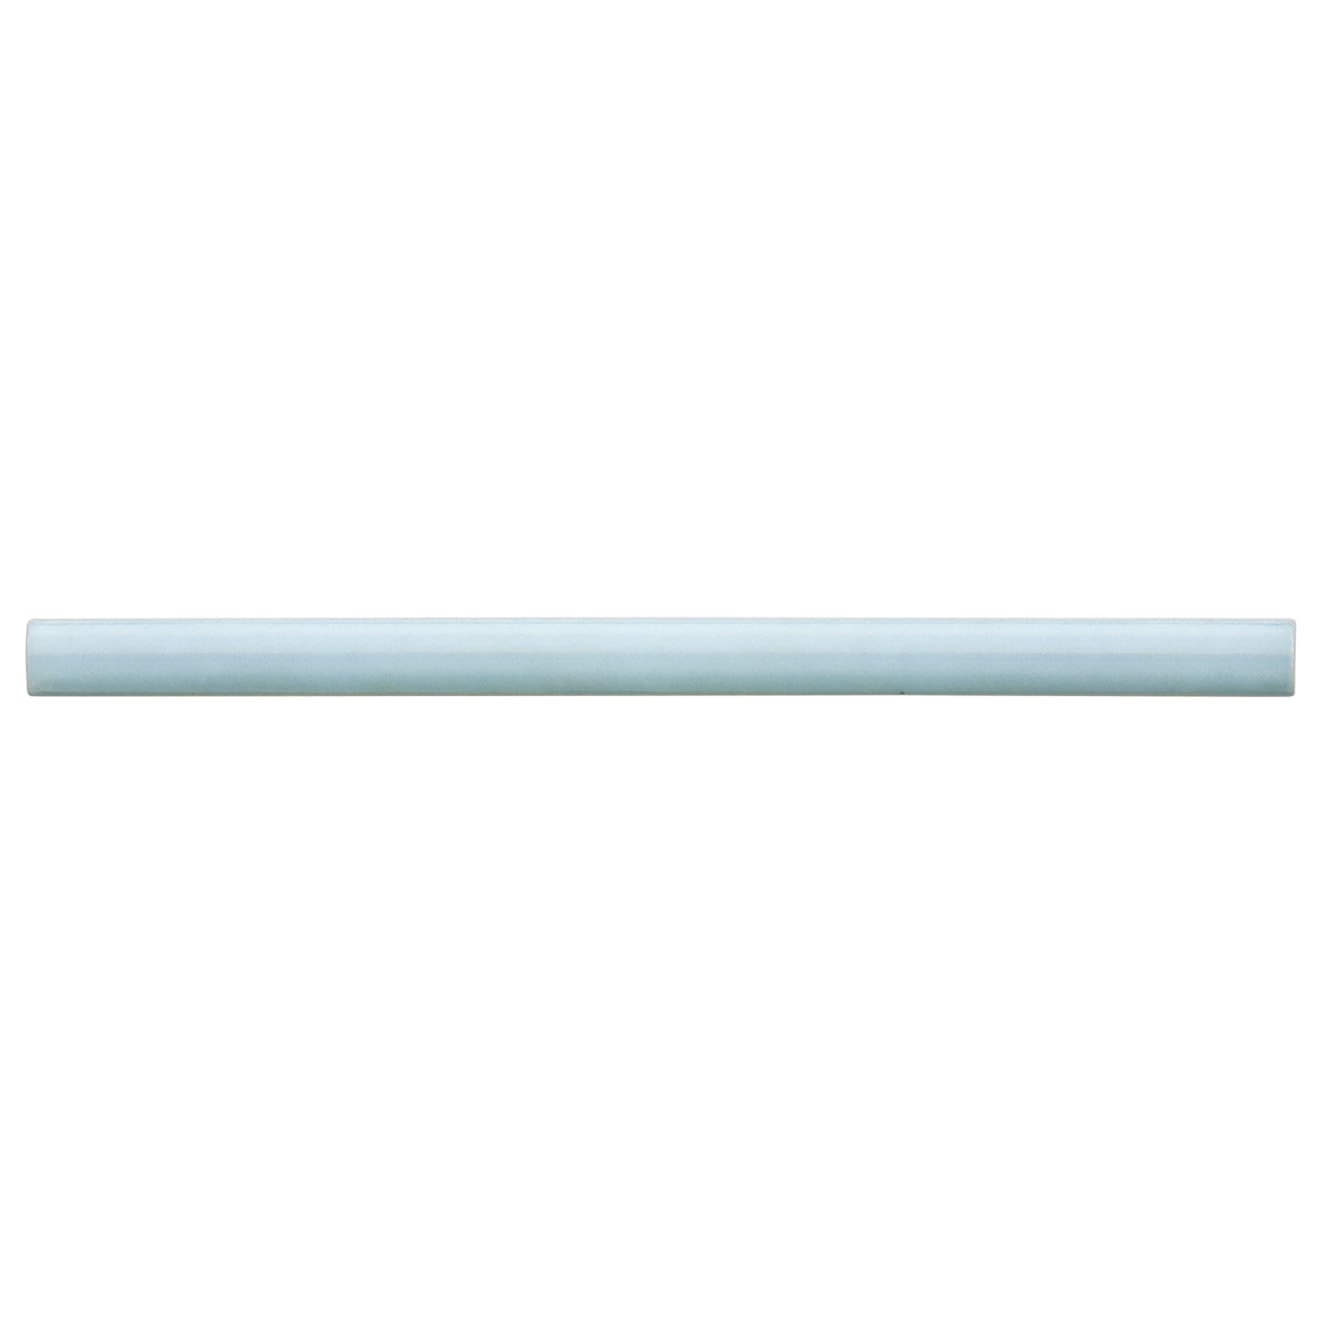 "Cloe 0.5"" x 8"" Trim in Baby Blue"